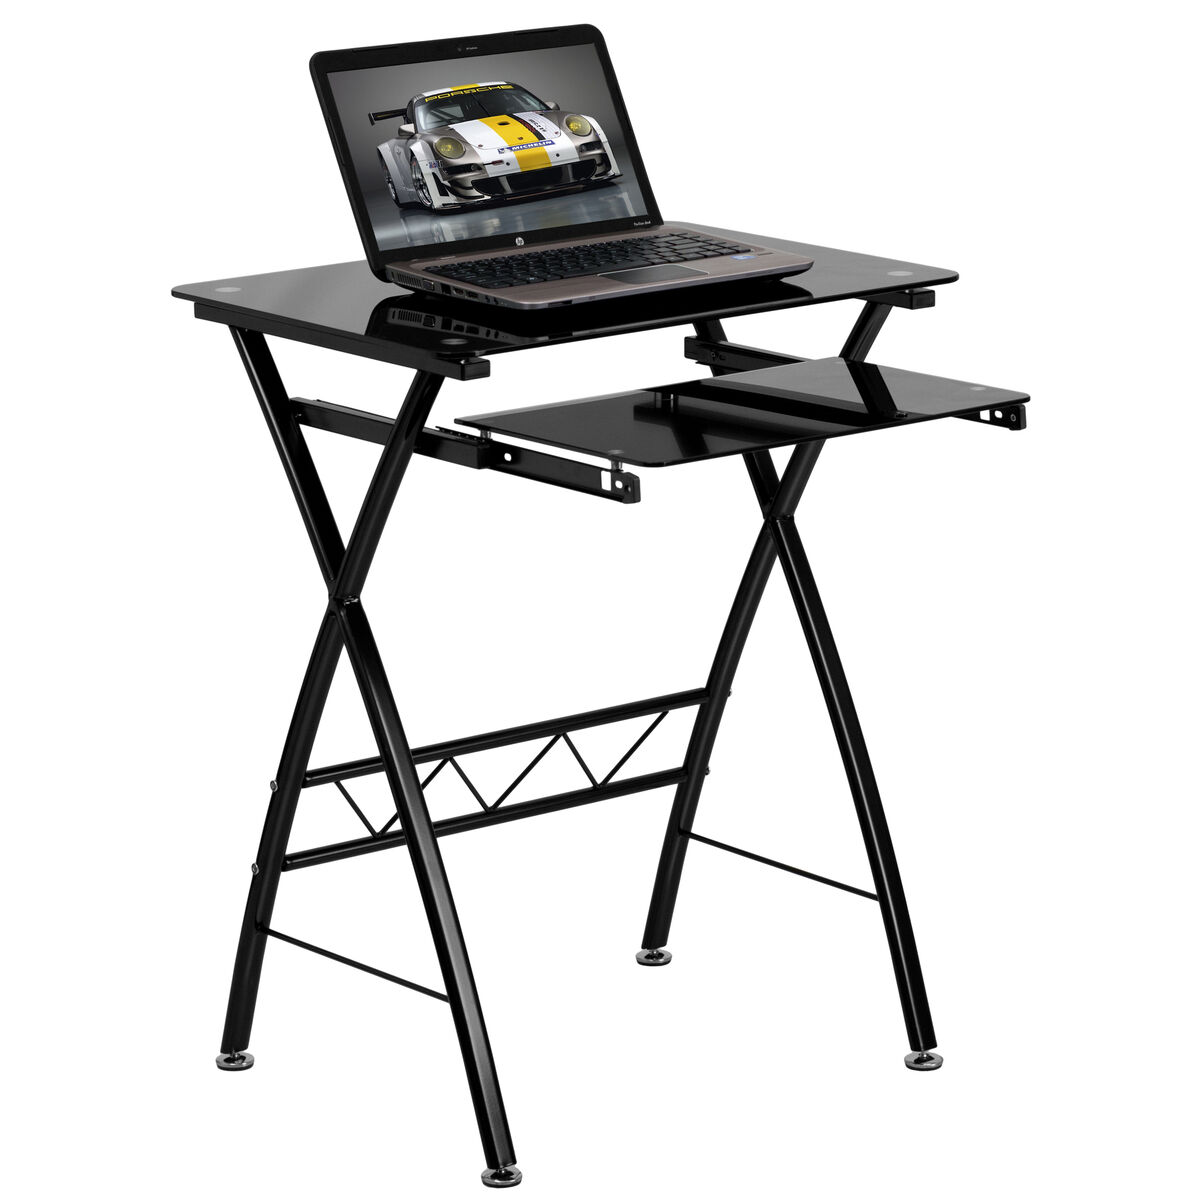 Our Black Tempered Glass Computer Desk With Pull Out Keyboard Tray Is On Now